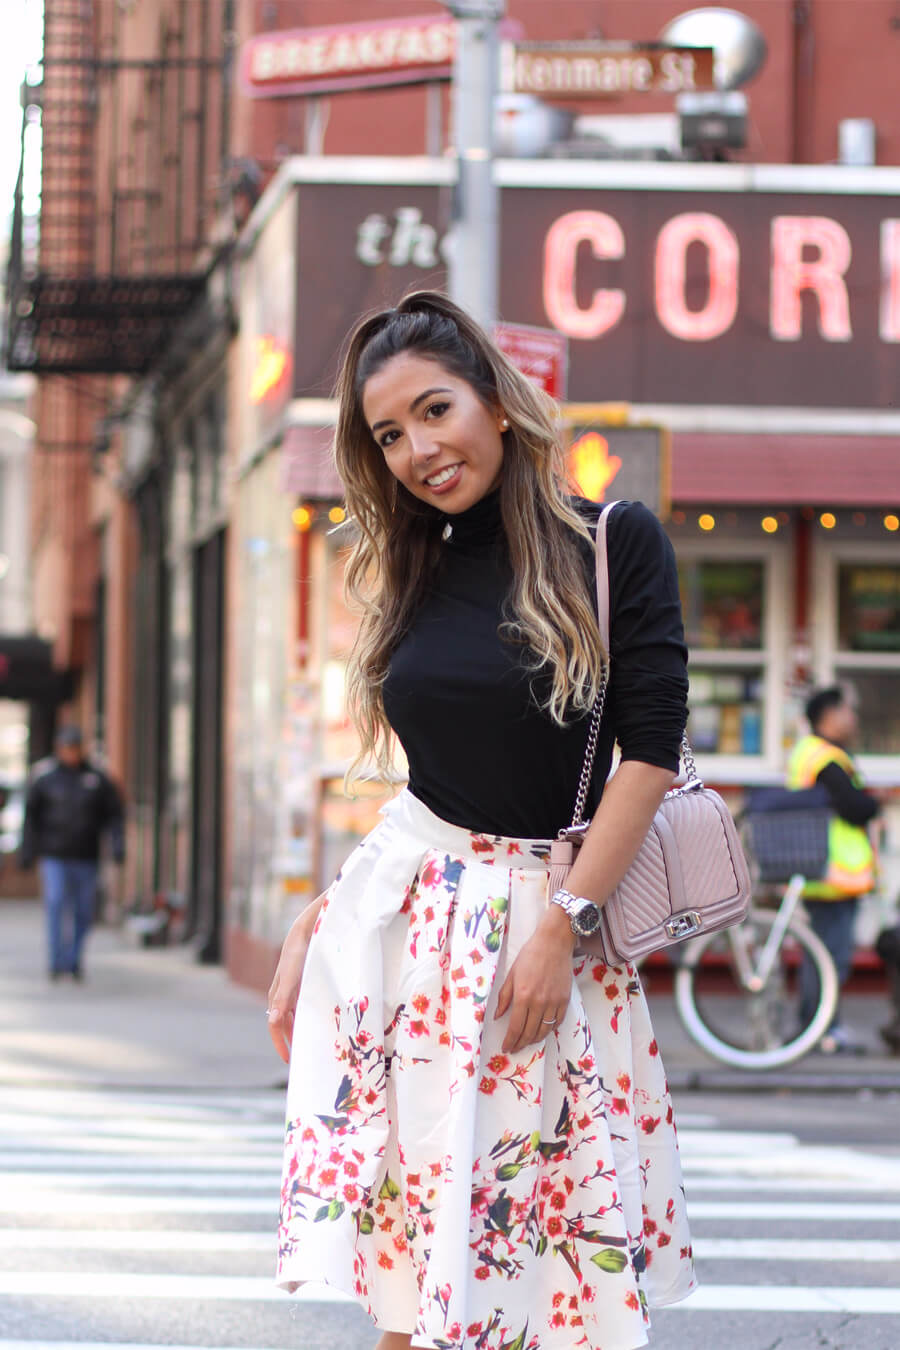 Black turtleneck from Land's End and Make Me chic floral skirt. Fall style report.